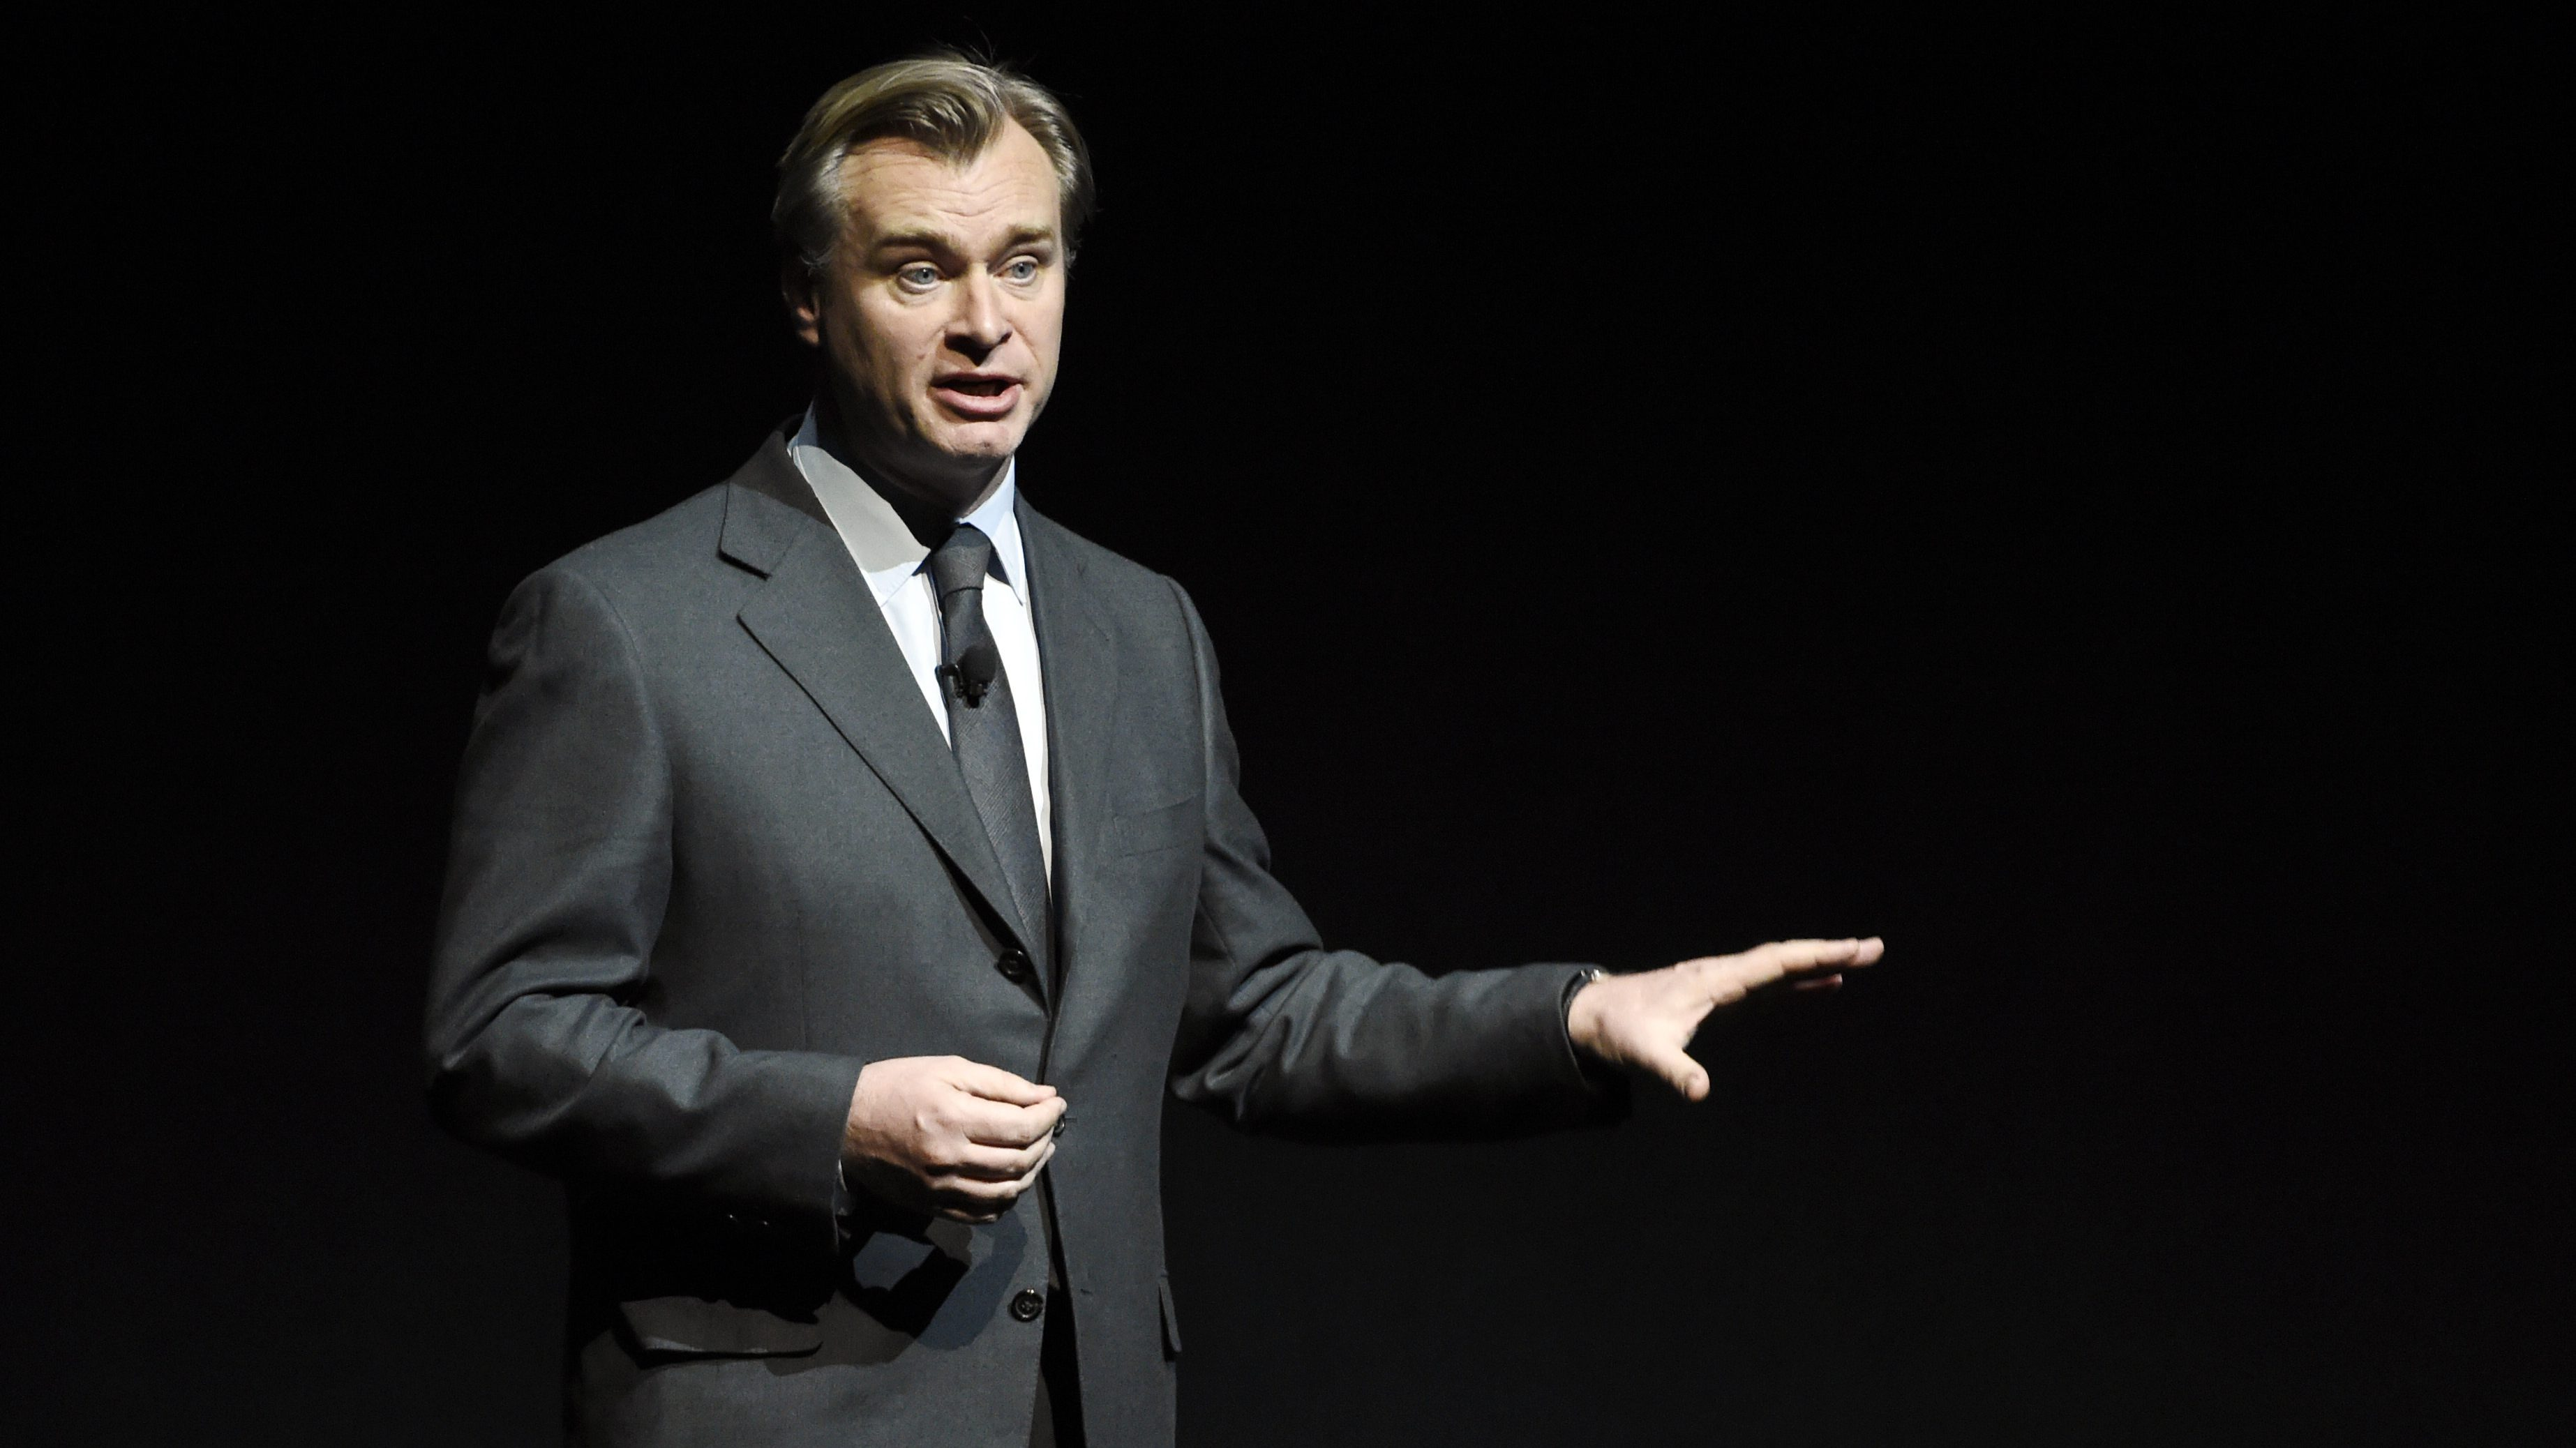 """Christopher Nolan, director of the upcoming film """"Dunkirk,"""" discusses the film during the Warner Bros. Pictures presentation at CinemaCon 2017 at Caesars Palace on Wednesday, March 29, 2017, in Las Vegas. (Photo by Chris Pizzello/Invision/AP)"""